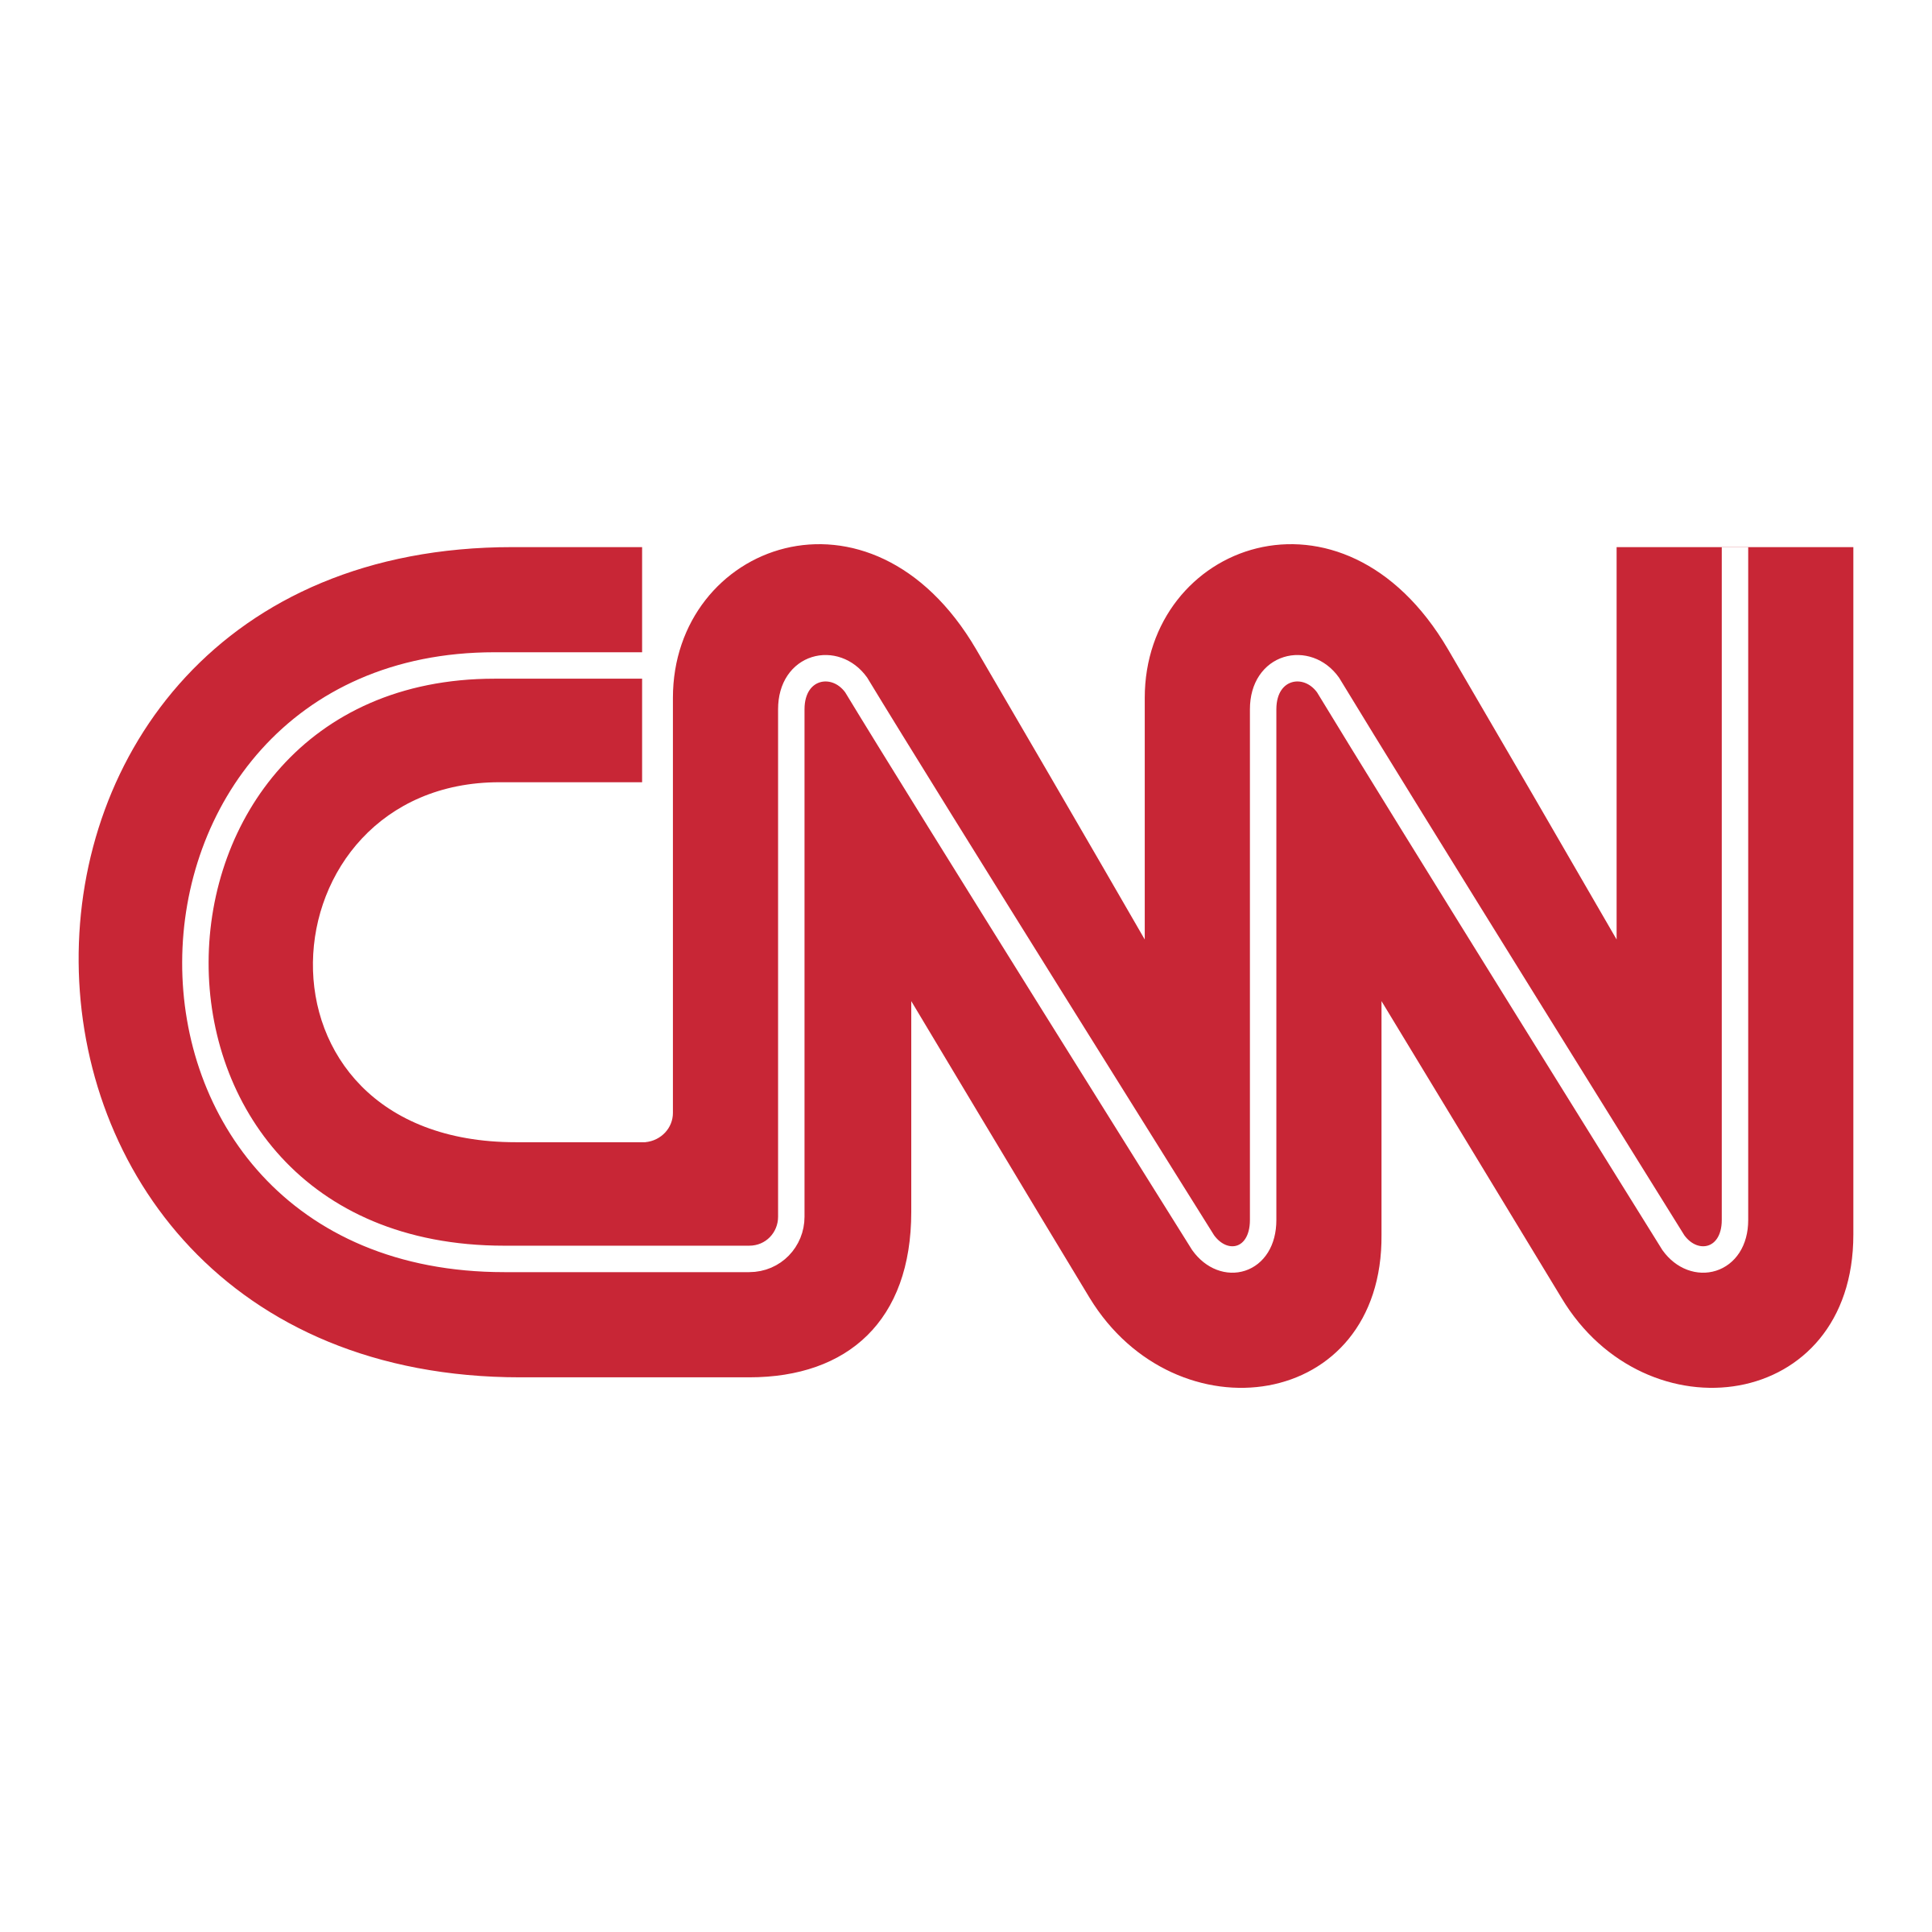 cnn logo png transparent svg vector freebie supply rh freebiesupply com cnn money logo vector cnn vector logo download